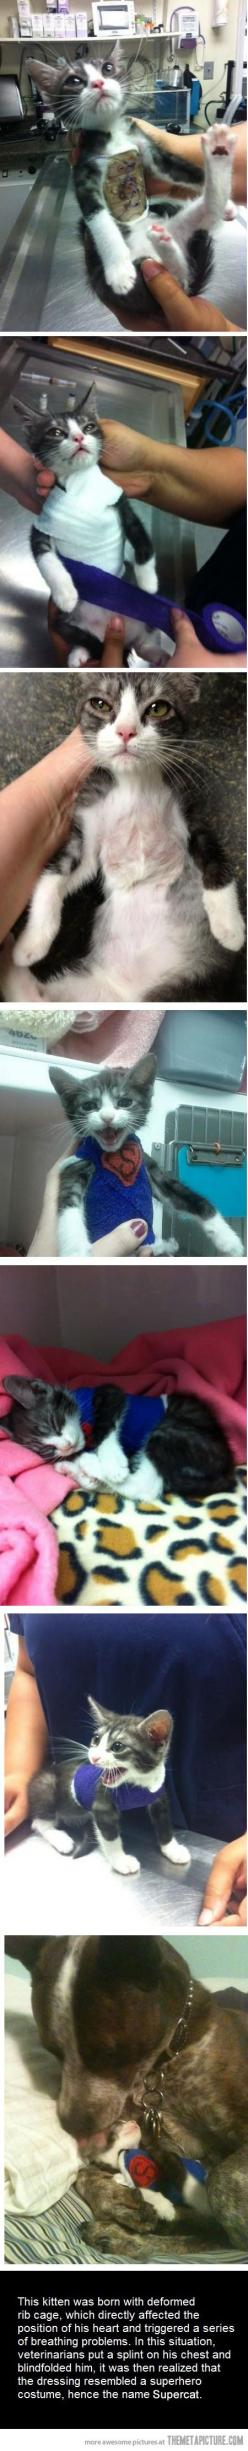 It's a bird… It's a plane… It's Supercat!  (I don't see any blindfold in any of these pictures, so I'm not sure what that's referring to. BUT these pictures are so sweet, bless the vet staff for taking such good care of this sweet baby.): Cats